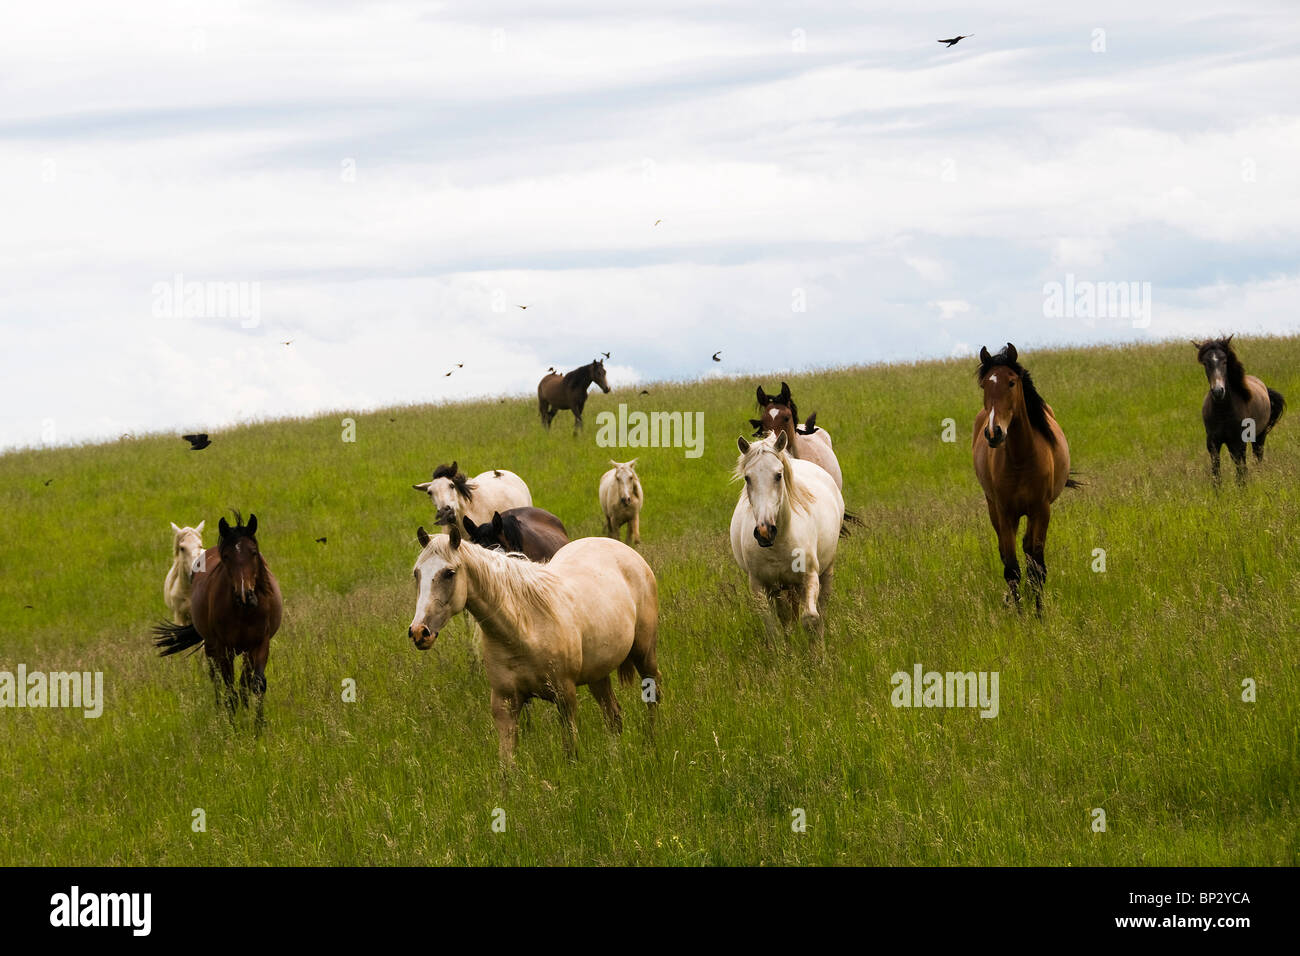 Lusitano mares running wild on a ranch in Oregon. - Stock Image